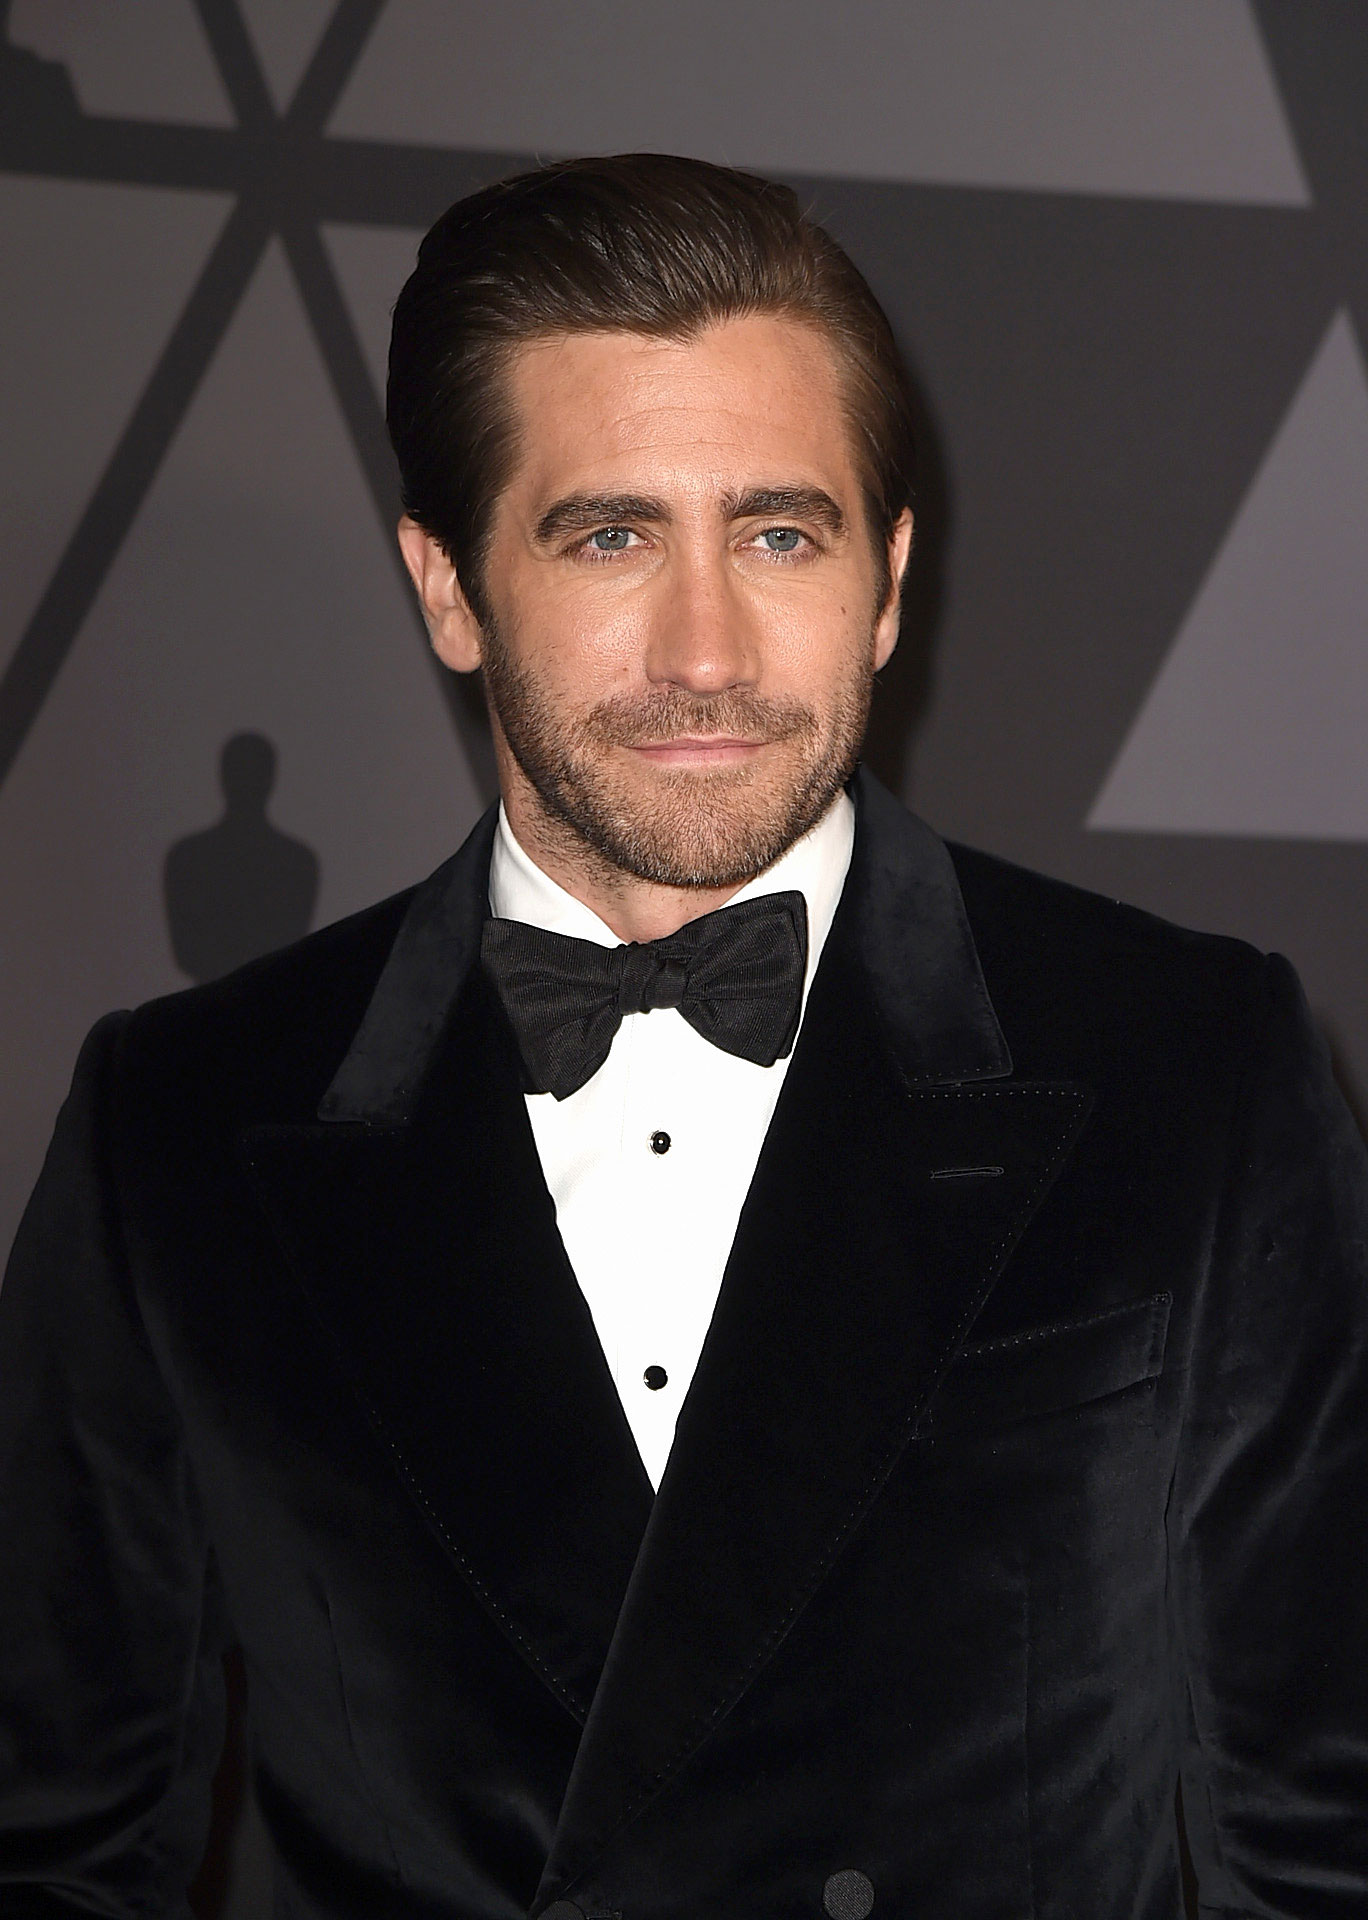 Jake Gyllenhaal - Stars Who Have Never Won Oscars - The Velvet Buzzsaw star came close to nabbing an Oscar once in 2006 for his supporting role in Brokeback Mountain , but no cigar here; he was beat out by George Clooney .